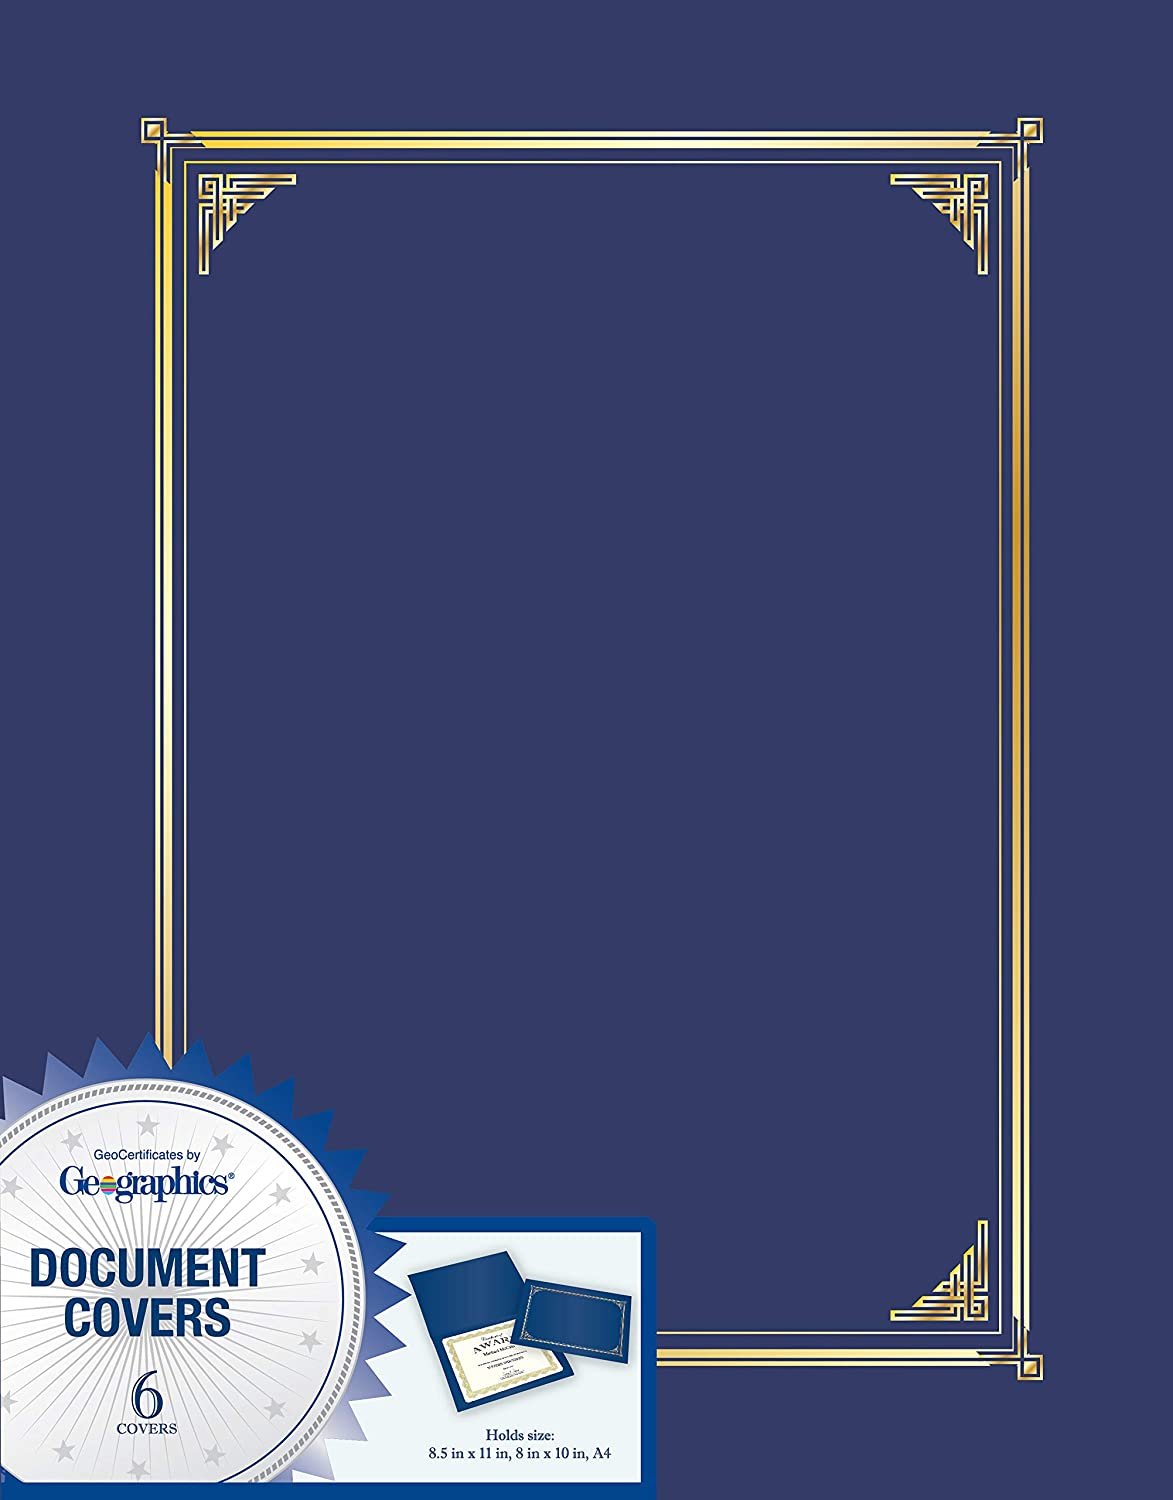 Geographics Document Covers, Certificate Holders, Diploma Holders, Navy Blue, Gold Foil Accents, 9.75 in x 12.5 in, Set of 6 (45332H)